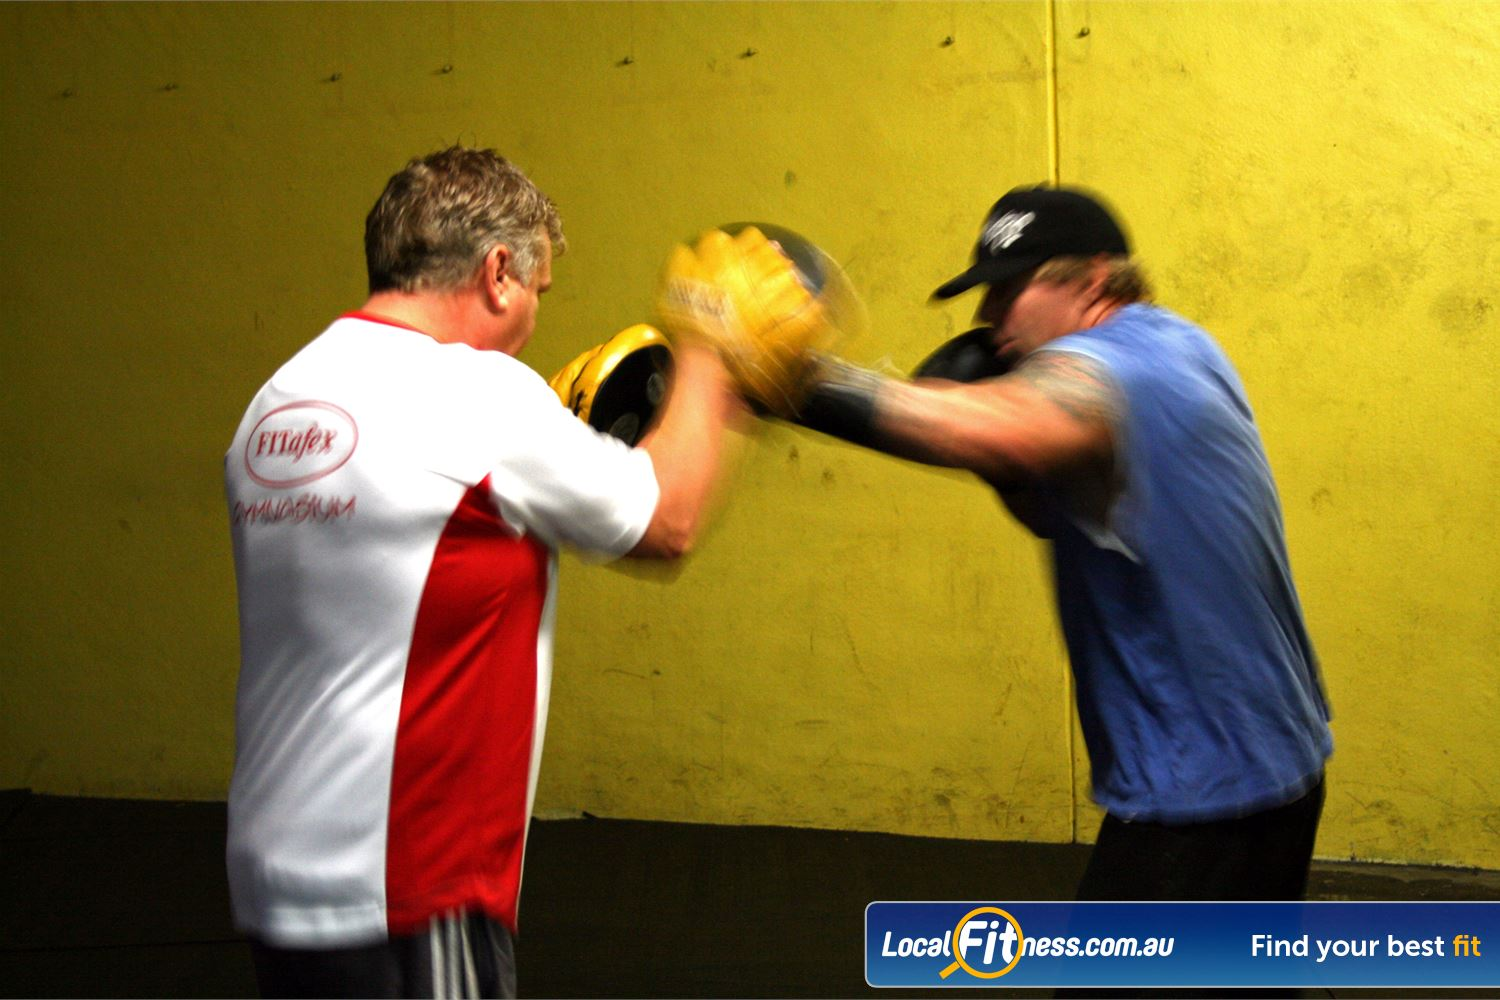 FITafex Gymnasium Near Essendon North Due some pad work with our Essendon boxing instructors.